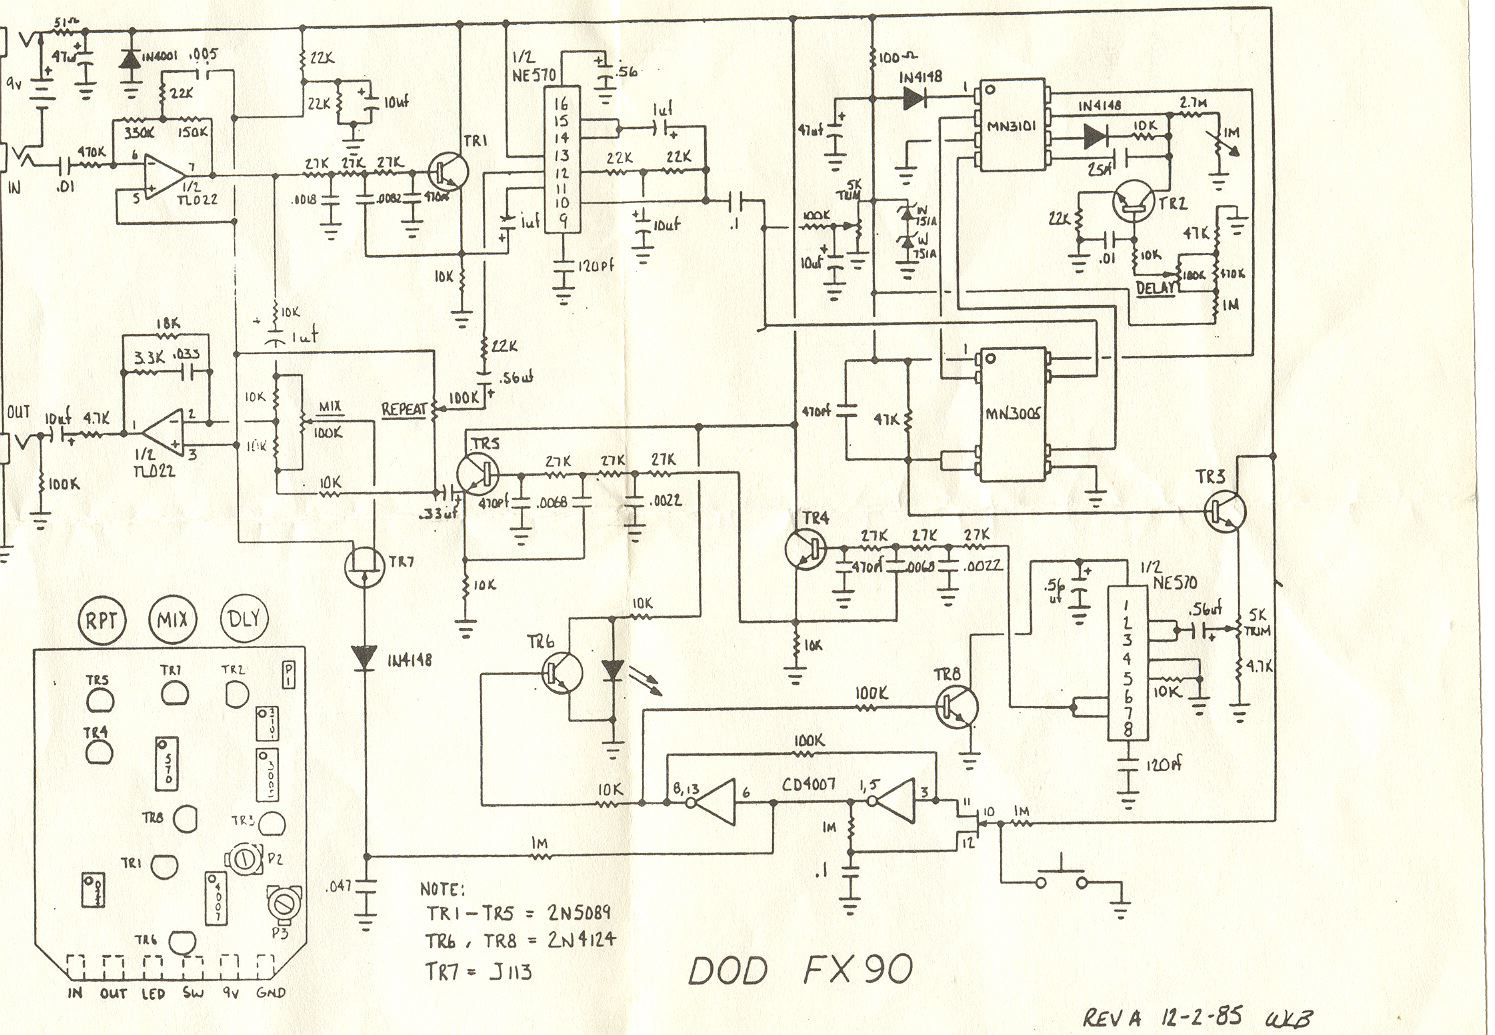 Astonishing Delay Box Wiring Diagram Wiring Library Wiring 101 Breceaxxcnl